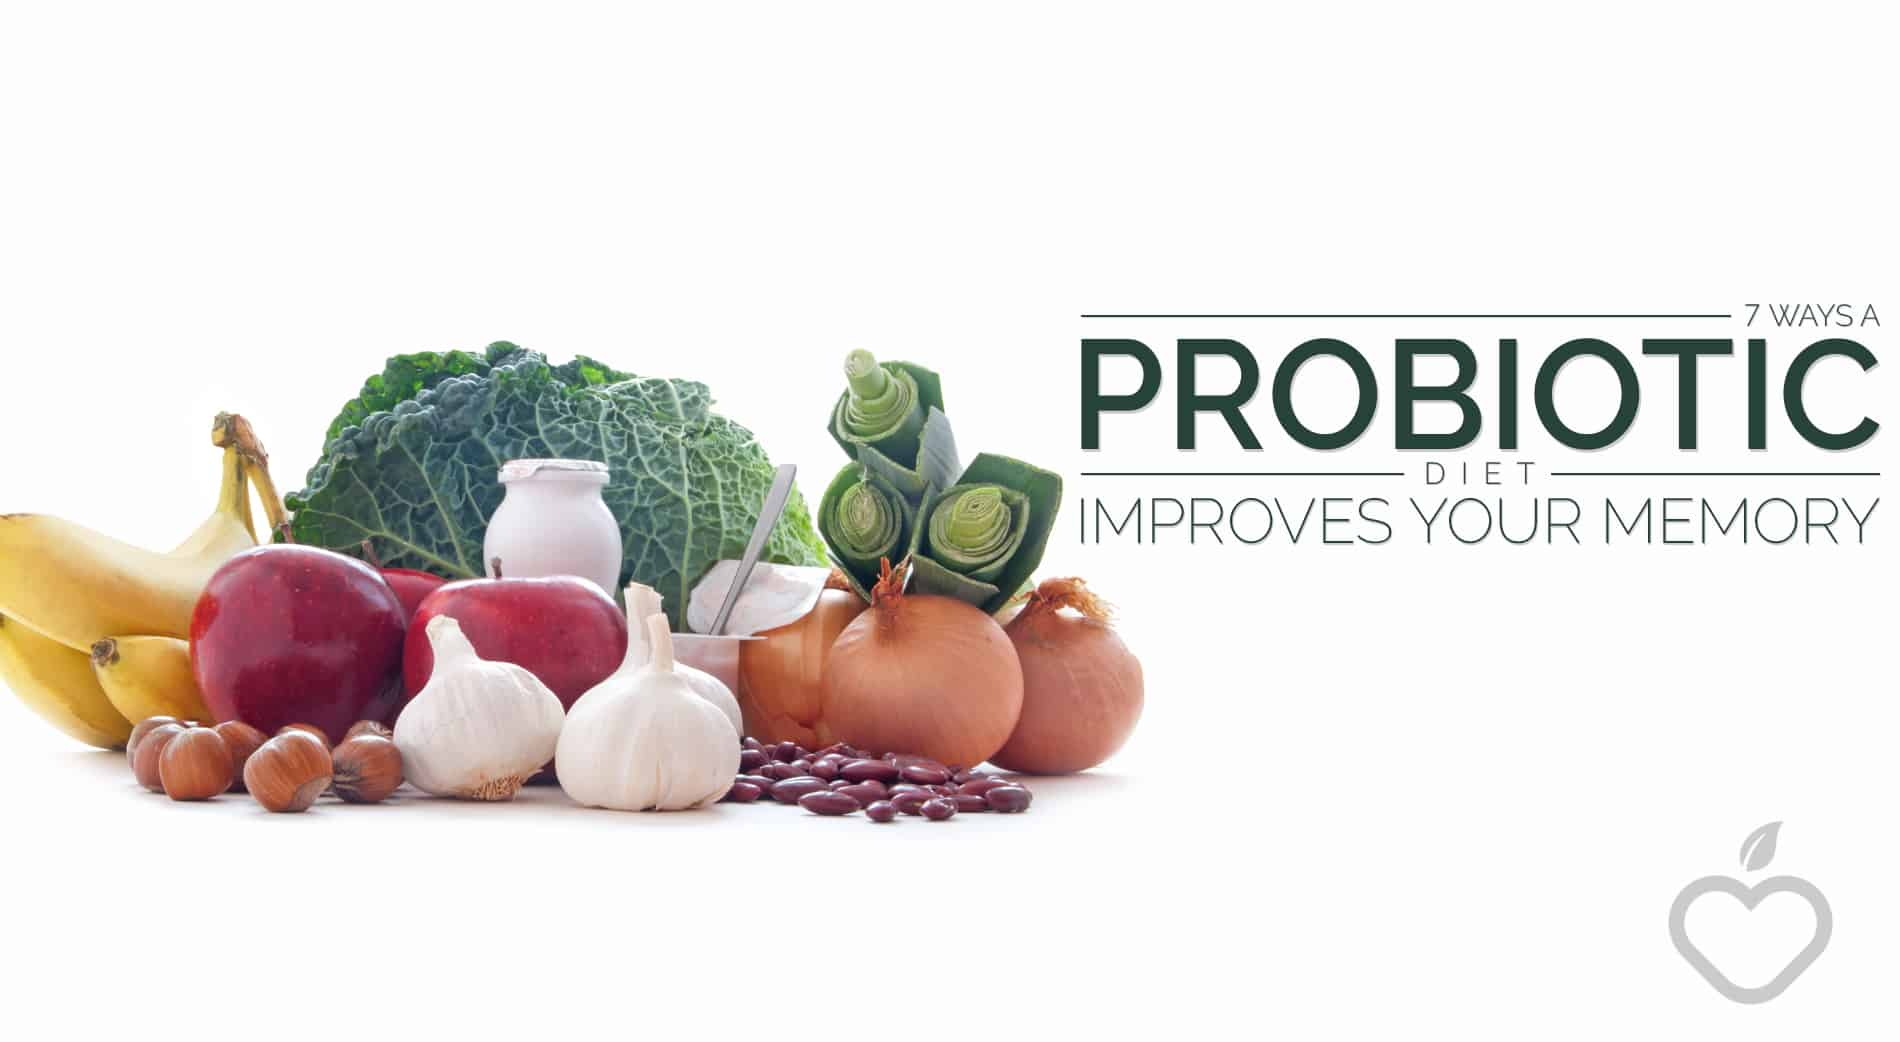 Probiotic Diet Image Design 1 - 7 Ways A Probiotic Diet Improves Your Memory